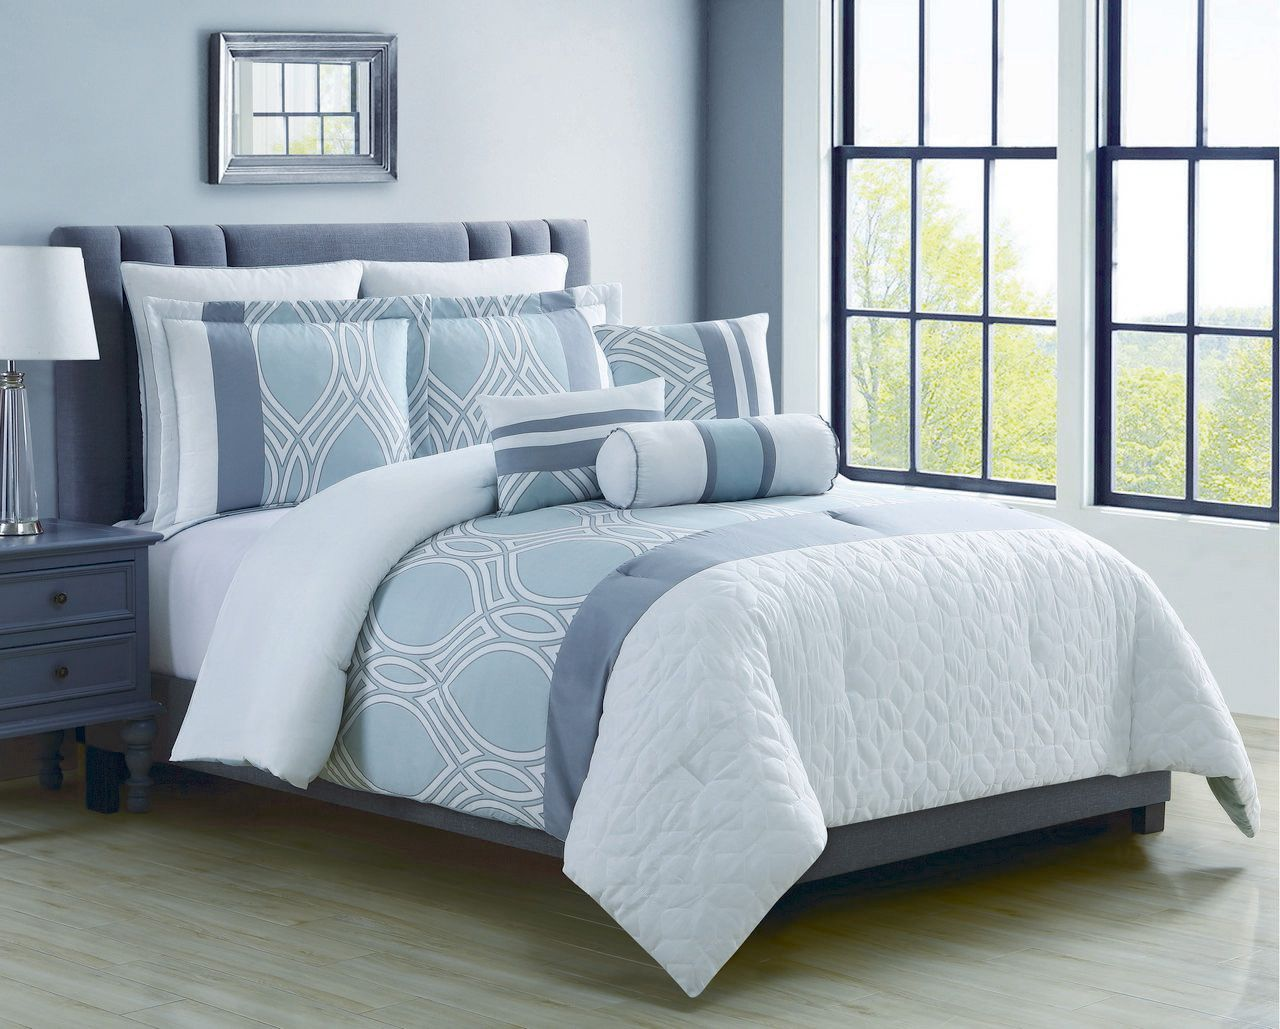 8 Piece Madlyn Ice Blue White Comforter Set Queen 4 Jpg 1280 1029 Blue And White Bedding Blue And White Comforter Tiffany Blue Bedding